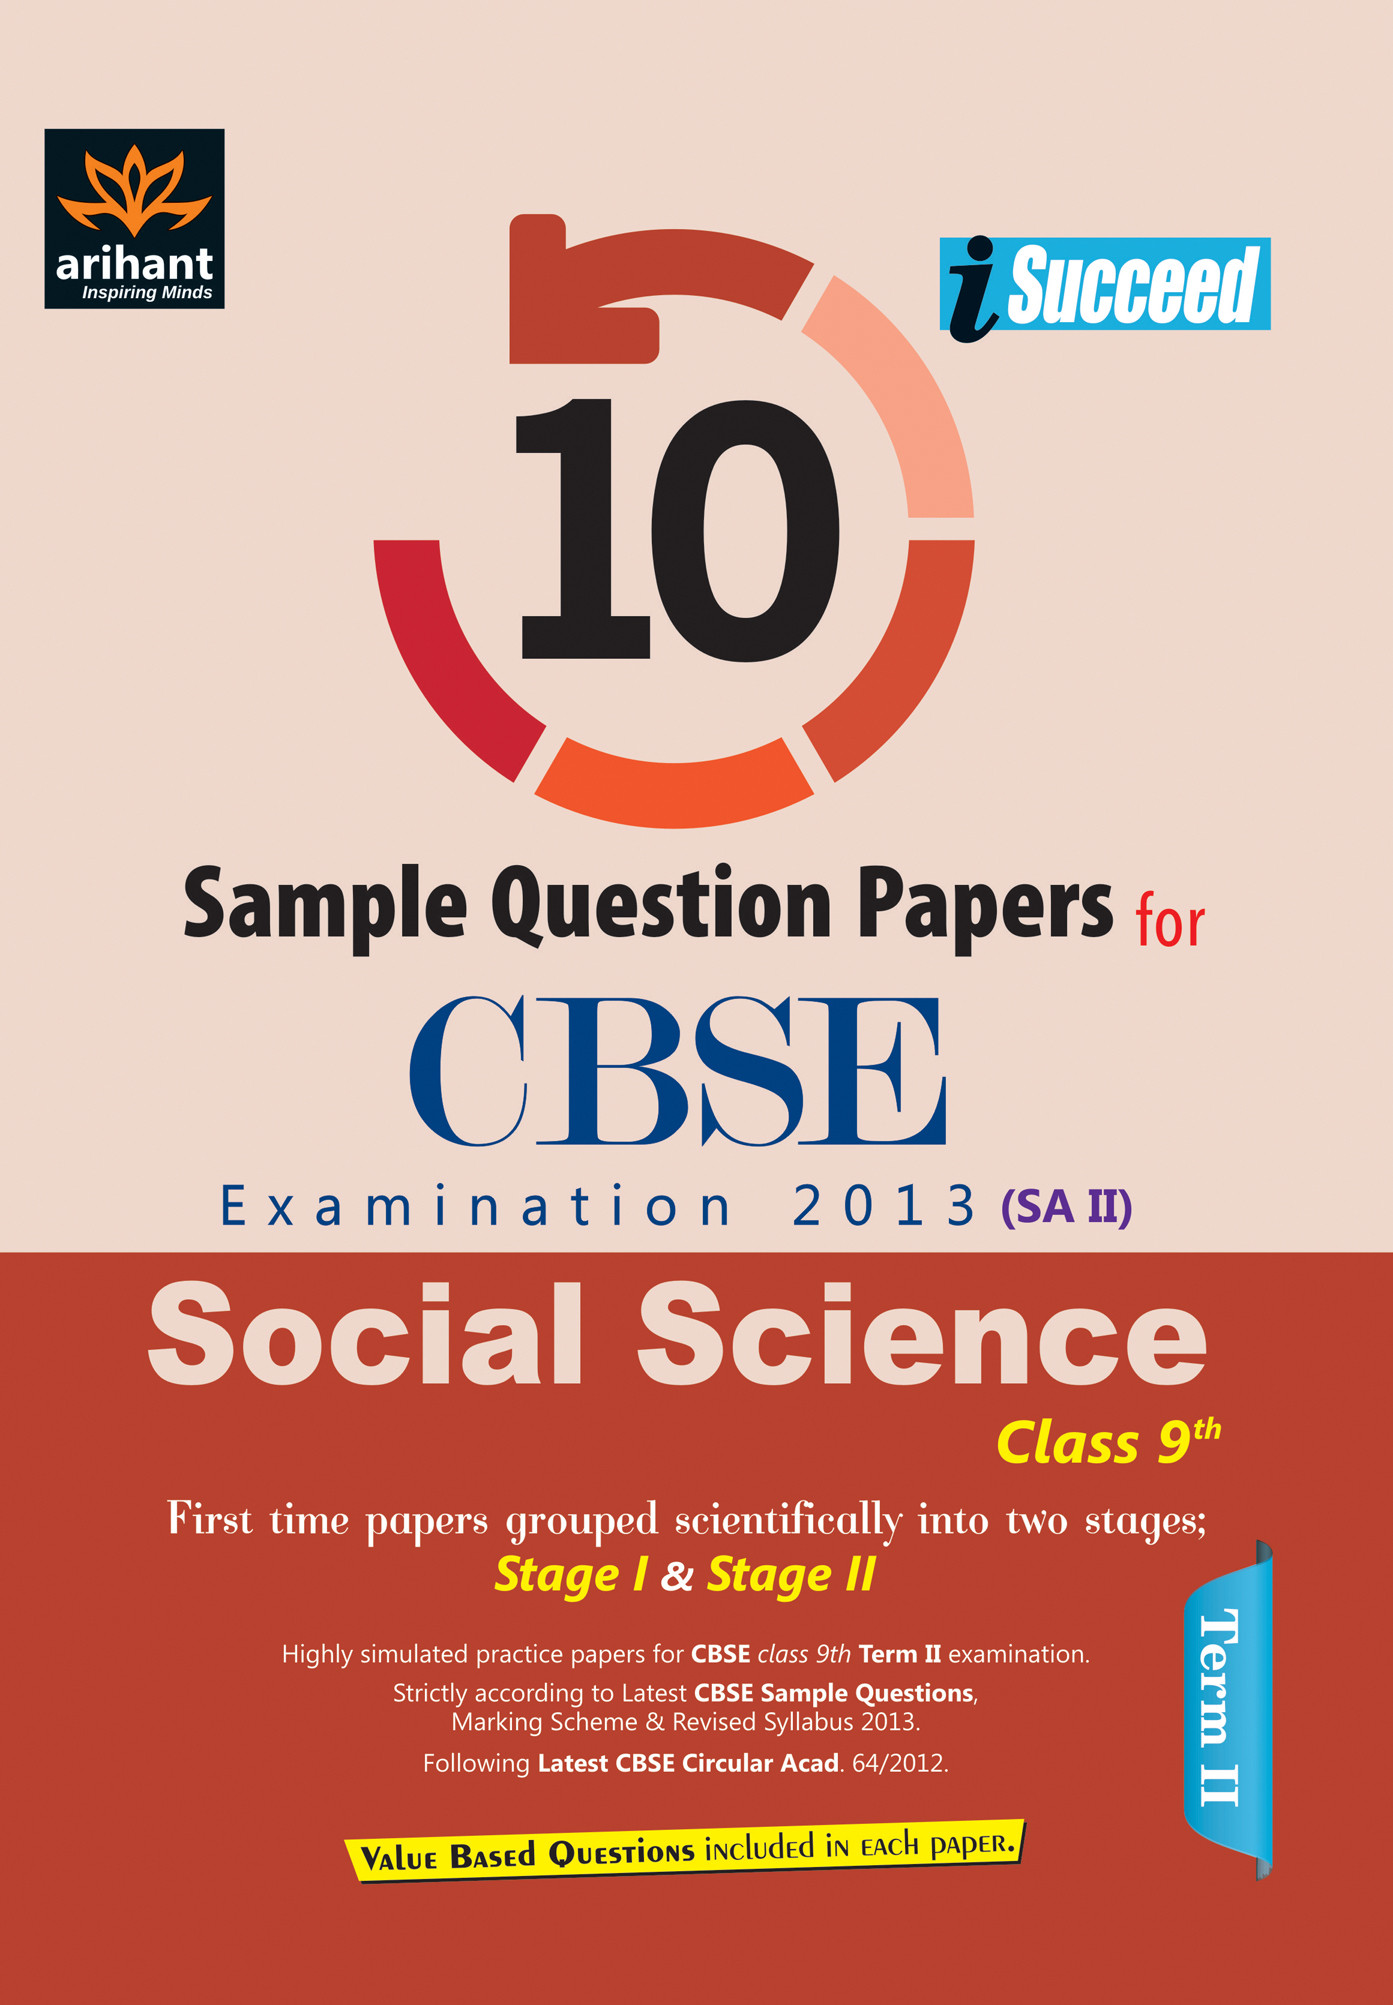 social science class 10 sample paper Download oswaal books publishes books for cbse board, ncert, karnataka sslc, tamil nadu sslc, maharashtra sscmp board oswaal books also publishes study material based on the latest ncert textbooks in hindi and english medium for free.